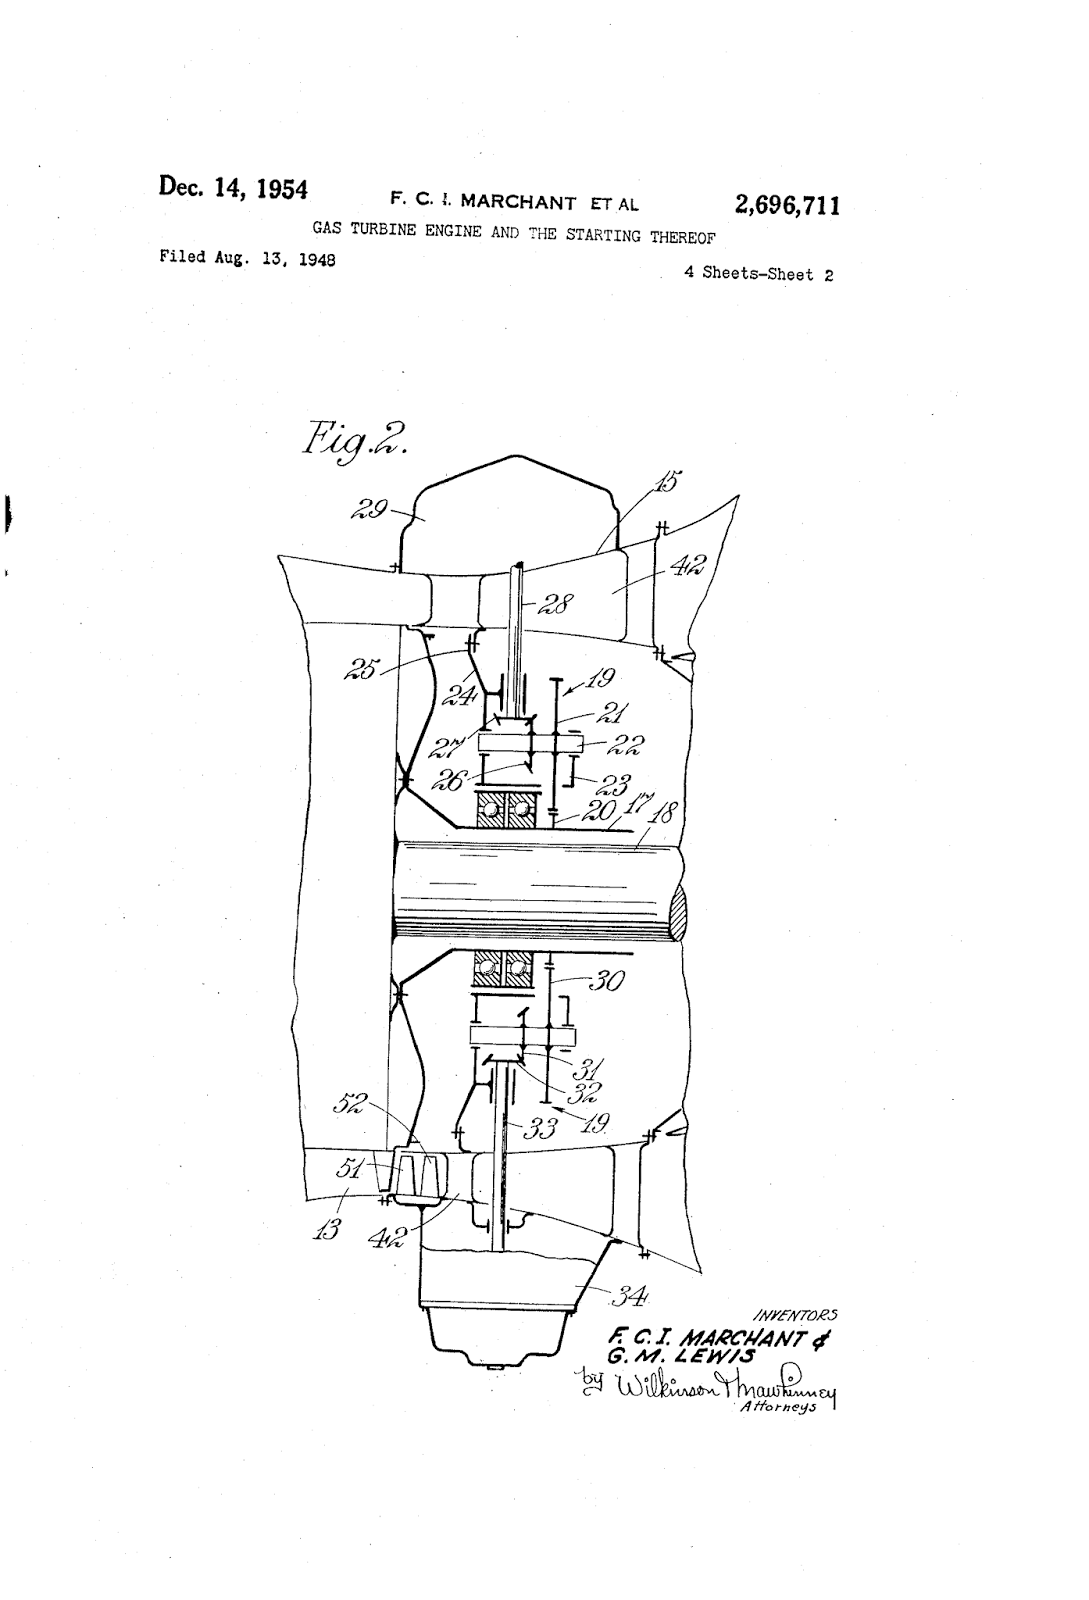 Gas Turbine Engine And The Starting Thereof